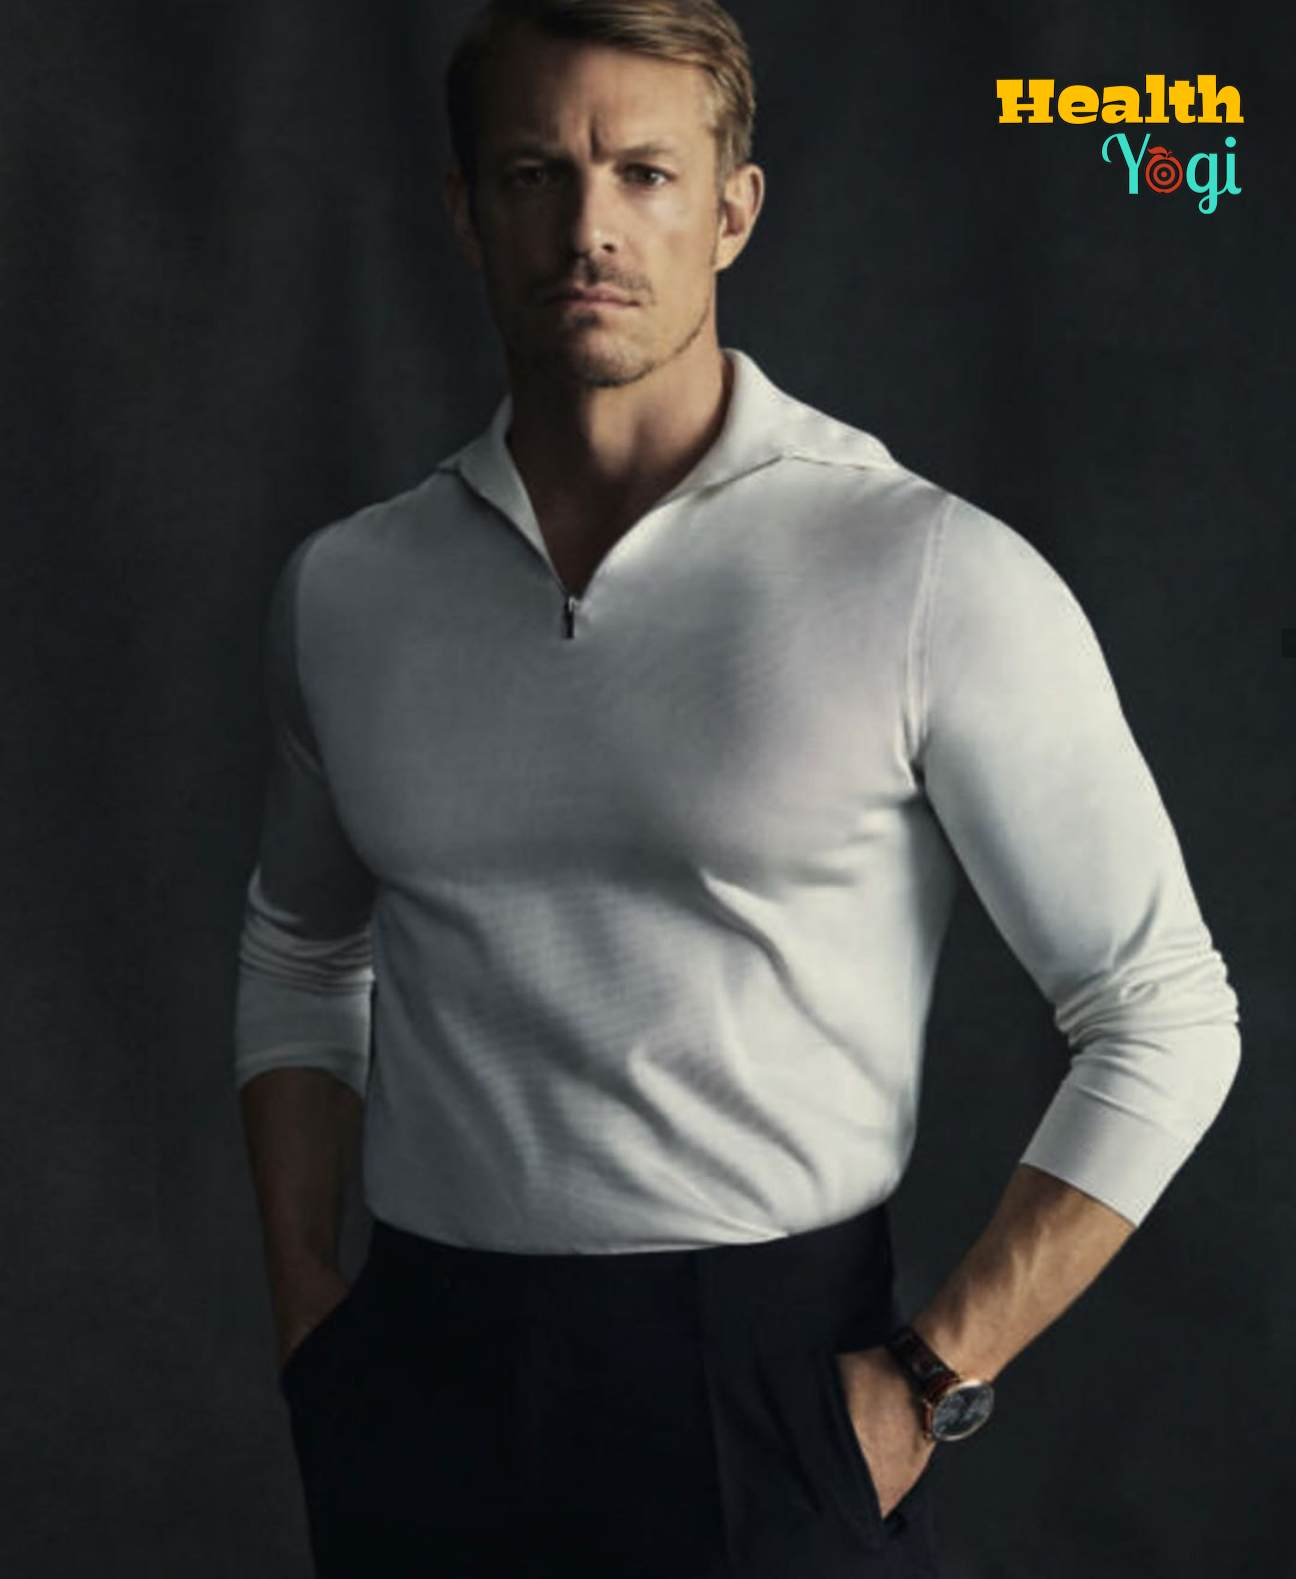 Joel Kinnaman Exercise and meal